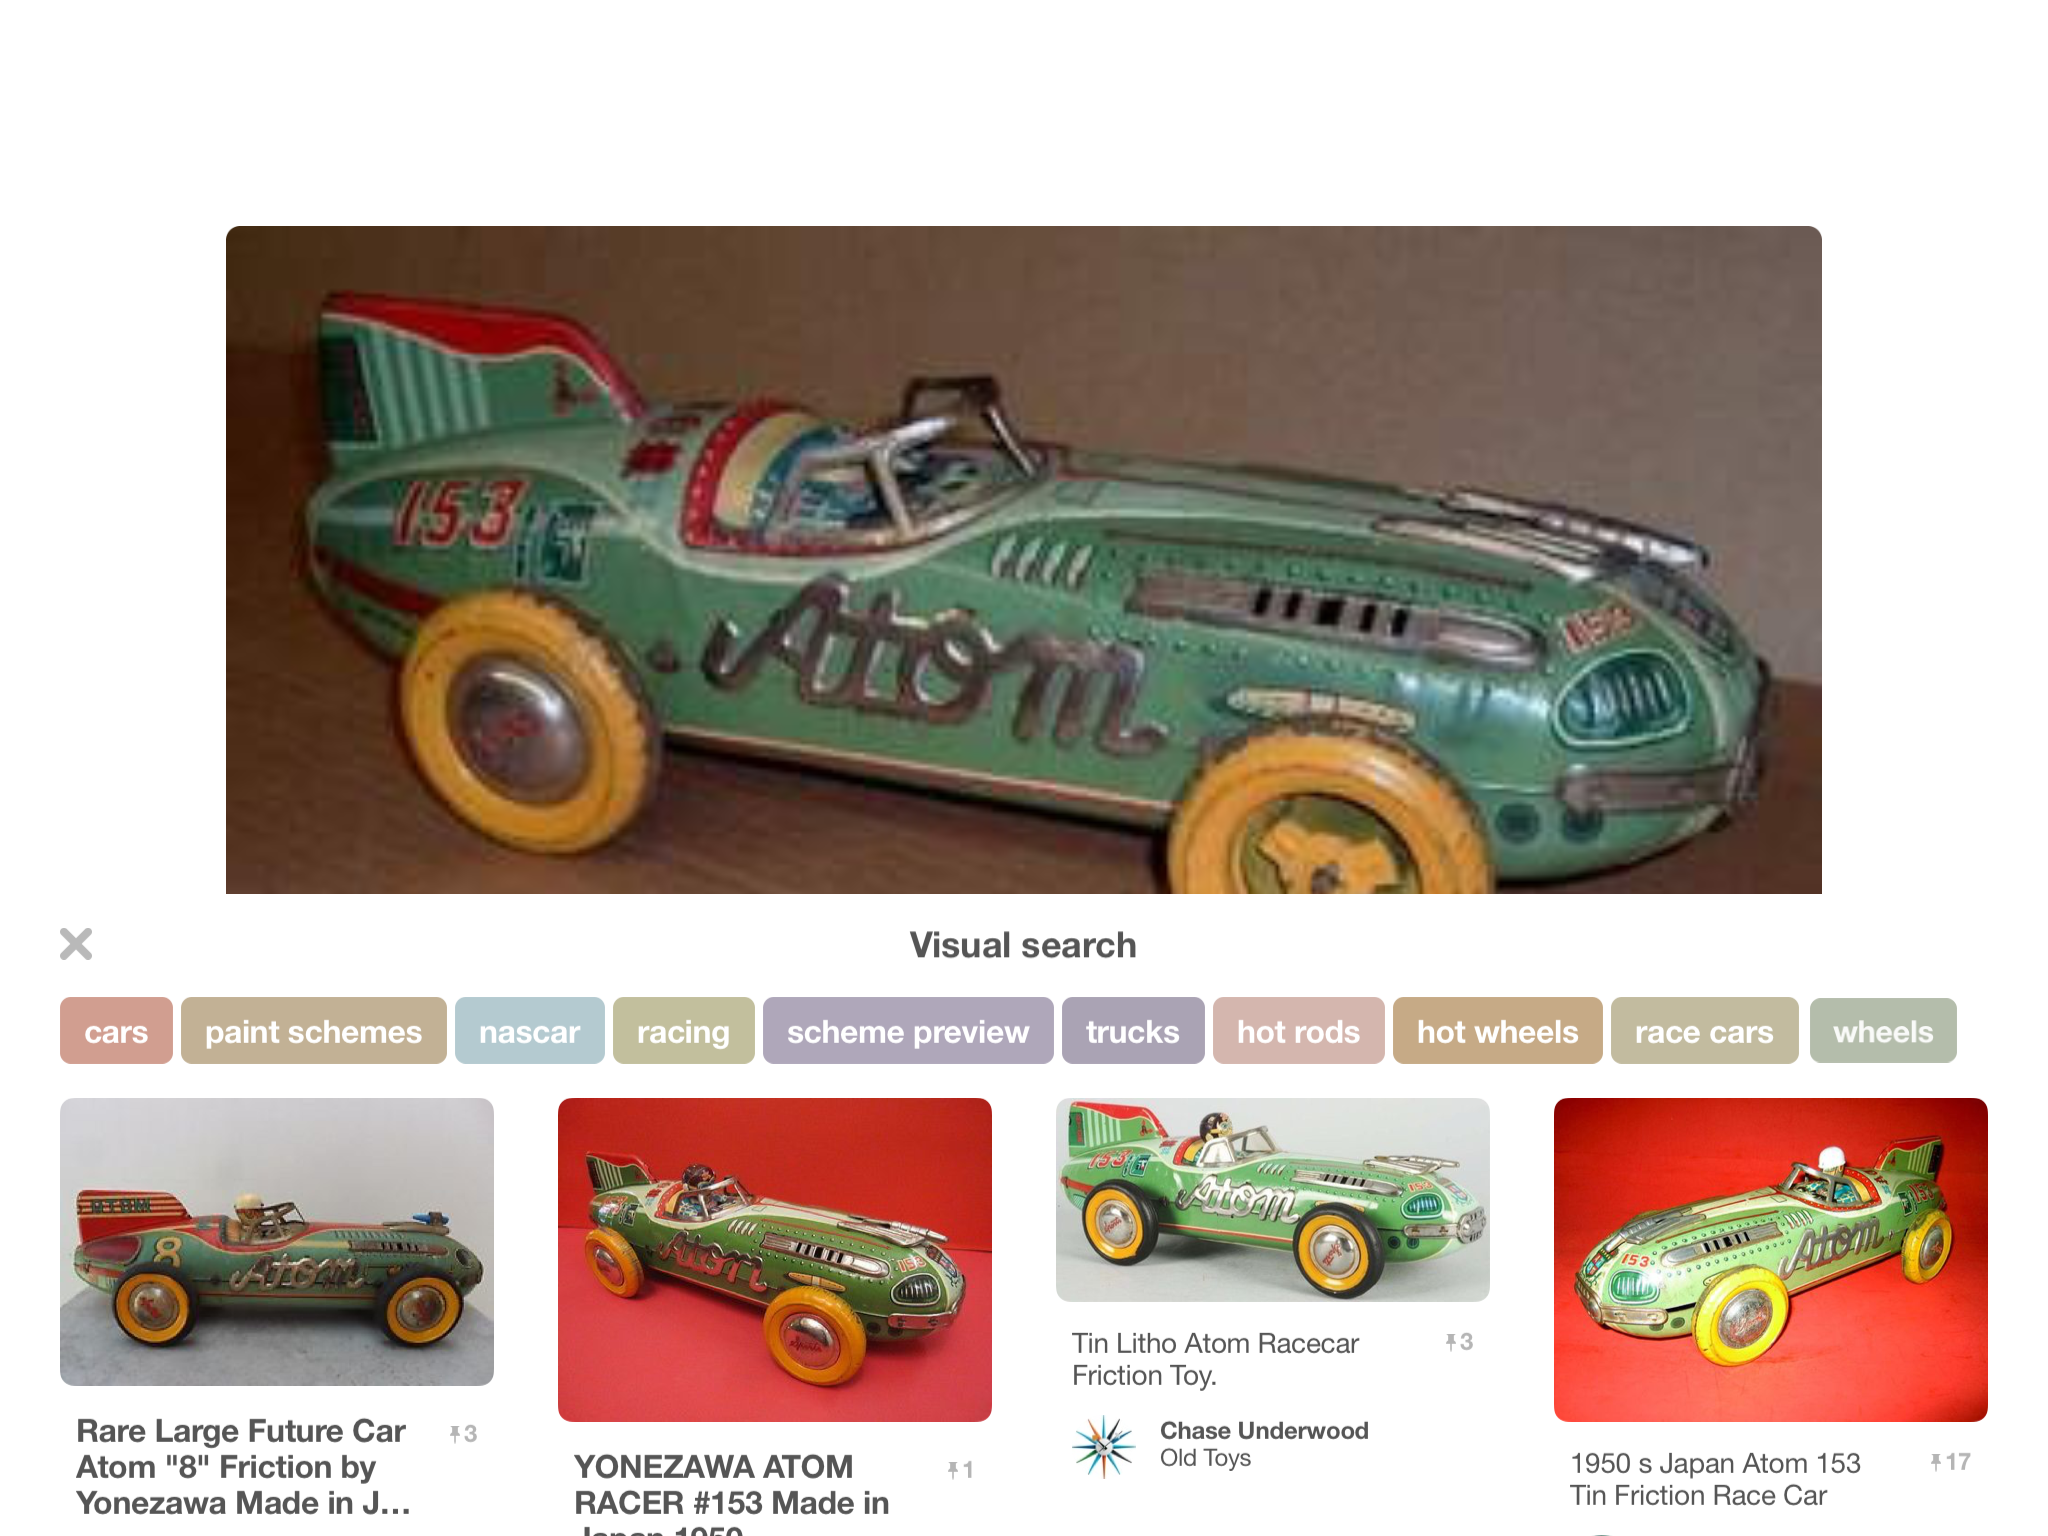 Cars 3 toys racers  Pin by Sandele on Vintage Sports Cars and Racing Cars  No pin